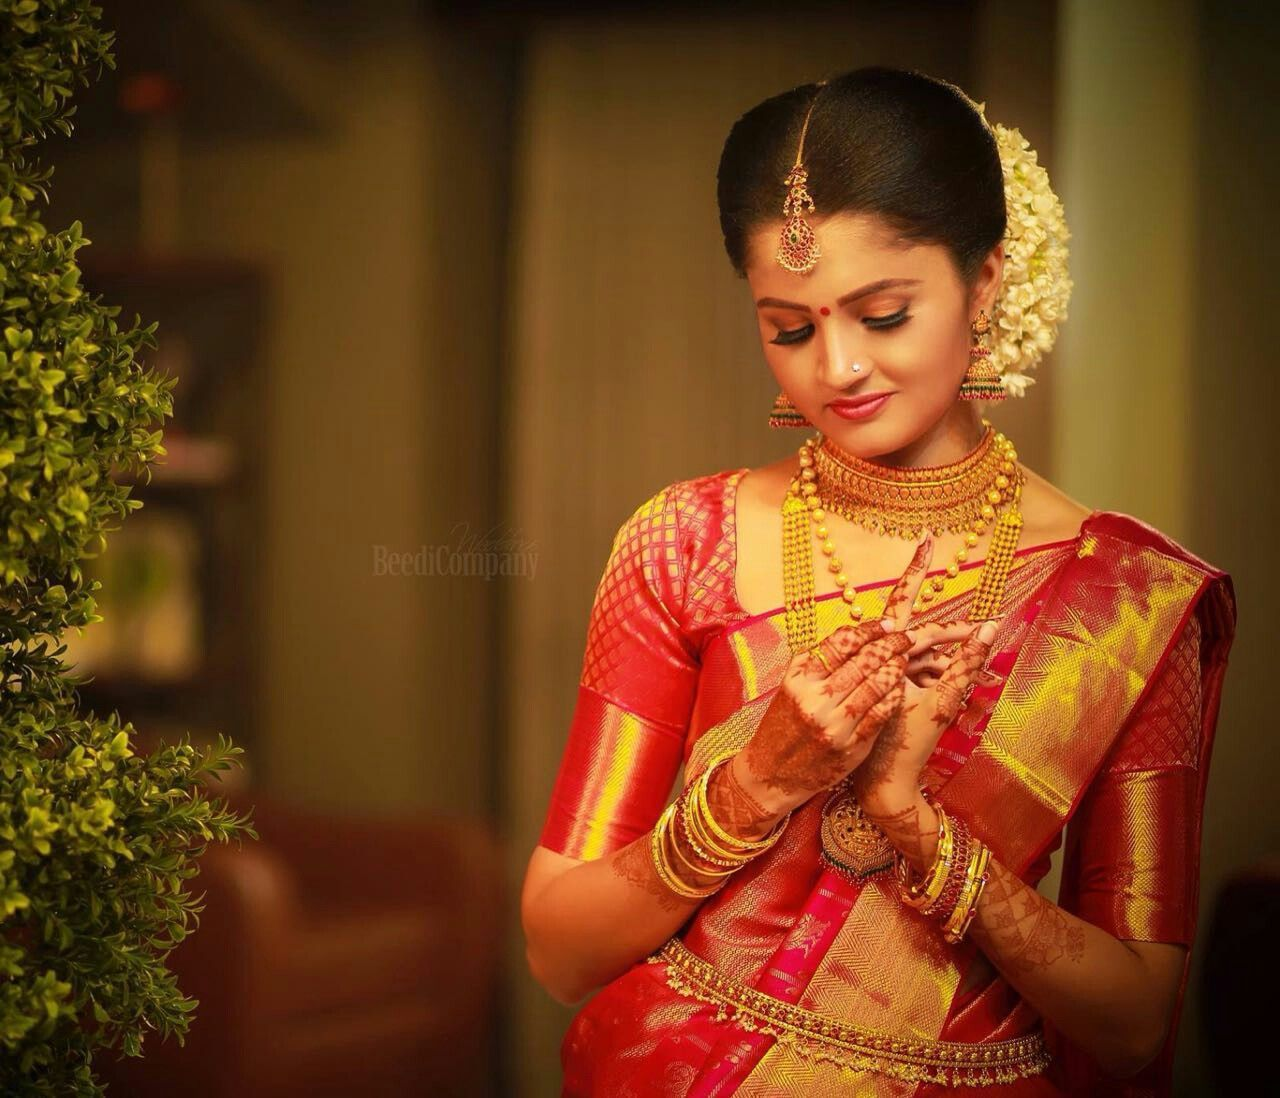 Kerala Hindu Wedding Hairstyles Pictures Sparkly Ornaments Wedding Saree Collection Kera In 2020 Hindu Wedding Kerala Wedding Photography Wedding Saree Collection